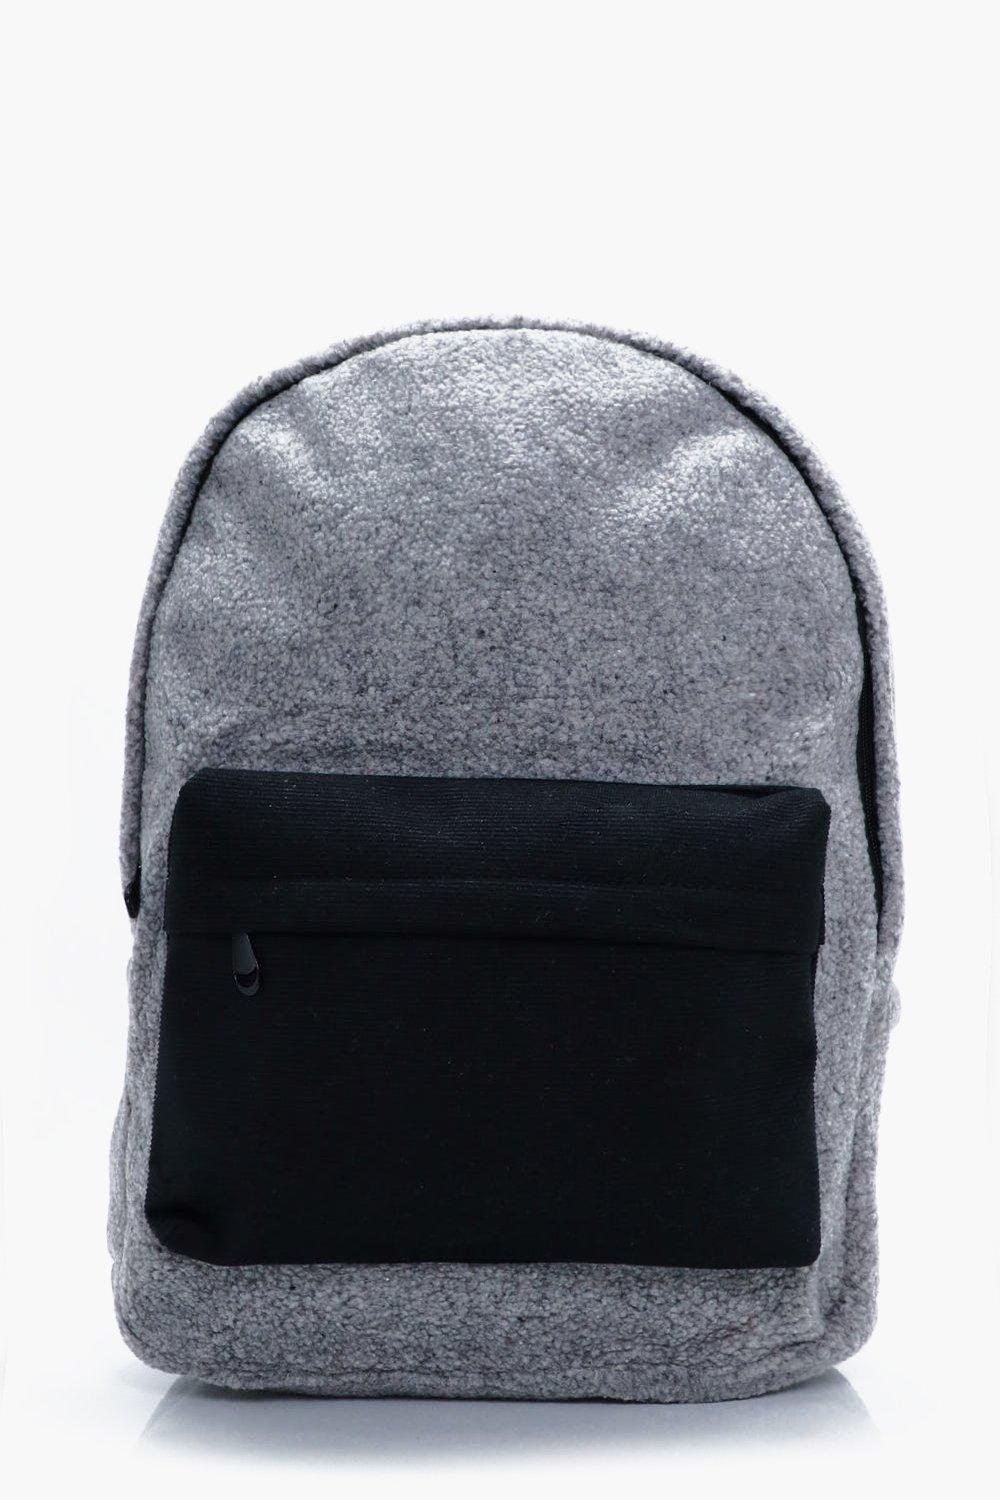 Back Pack With Contrast  Pocket - charcoal - Borg